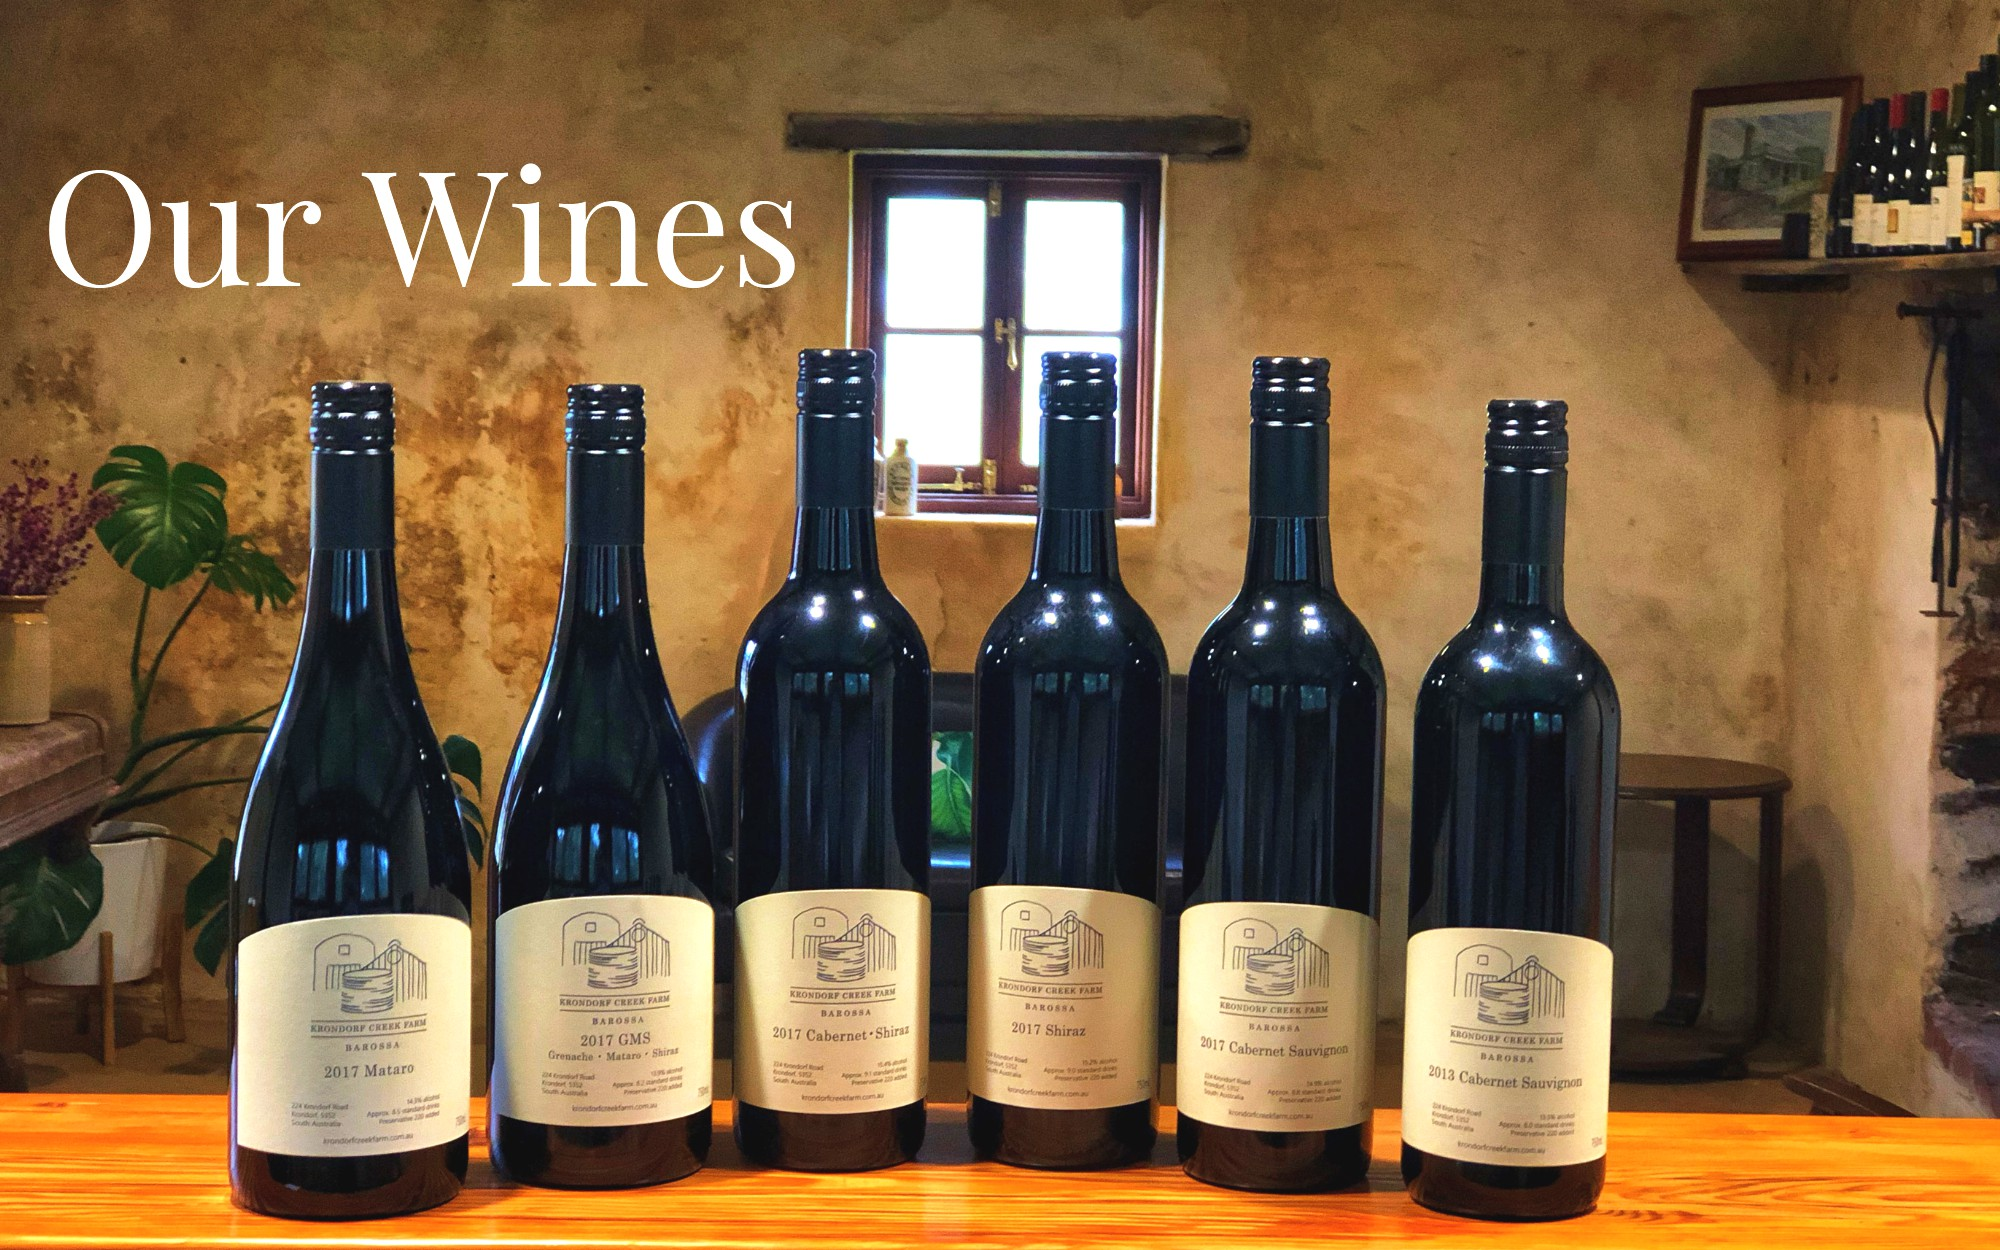 our wines resized down.jpg